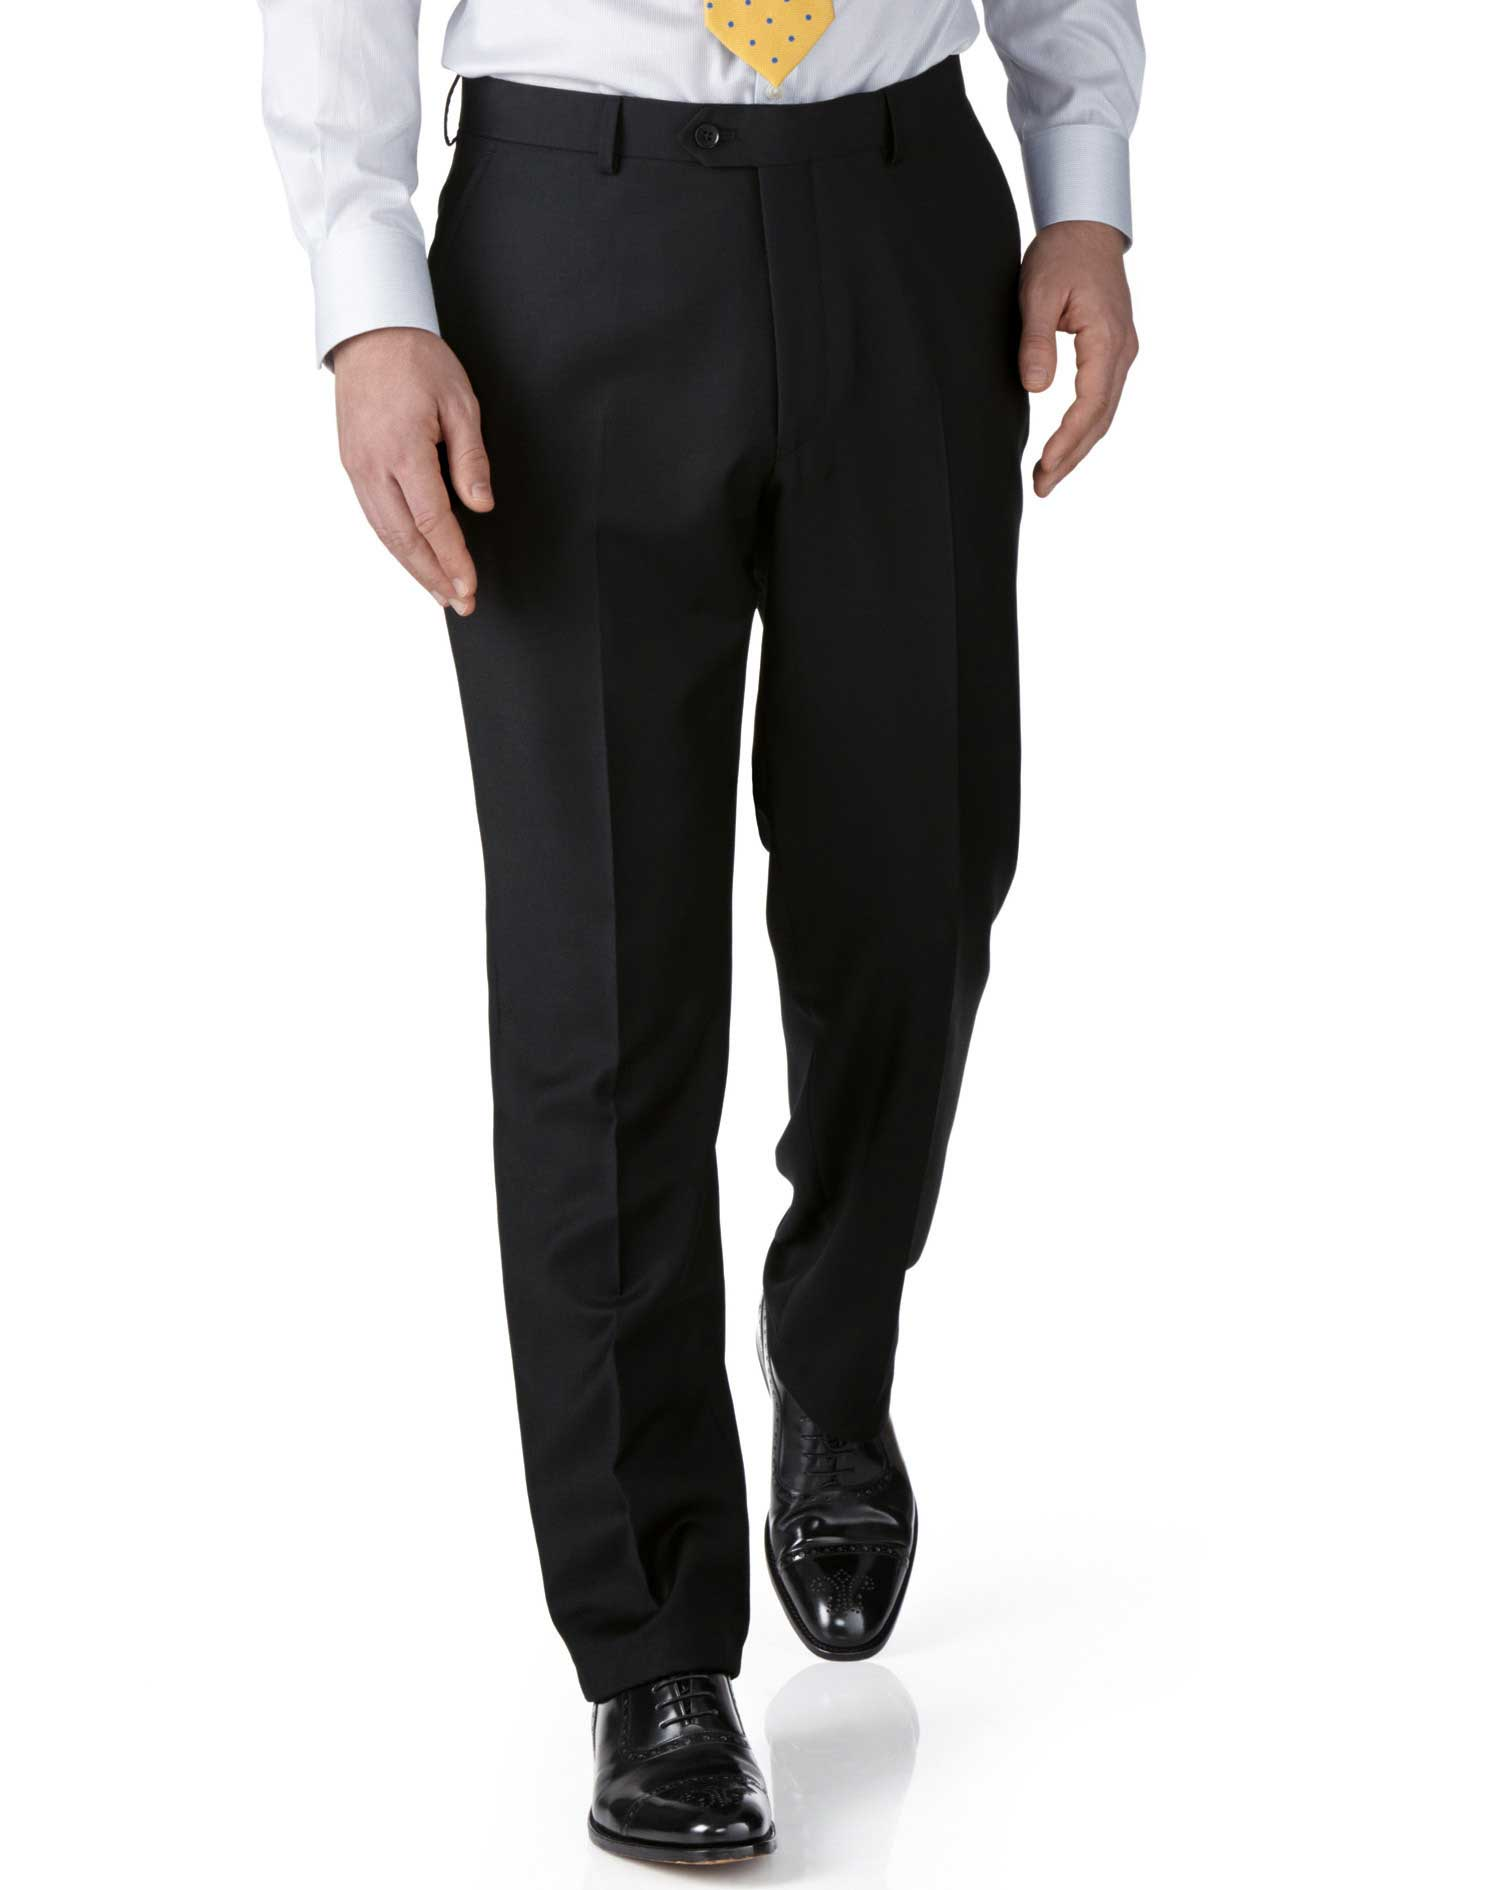 Black Extra Slim Fit Twill Business Suit Trouser Size W30 L32 by Charles Tyrwhitt